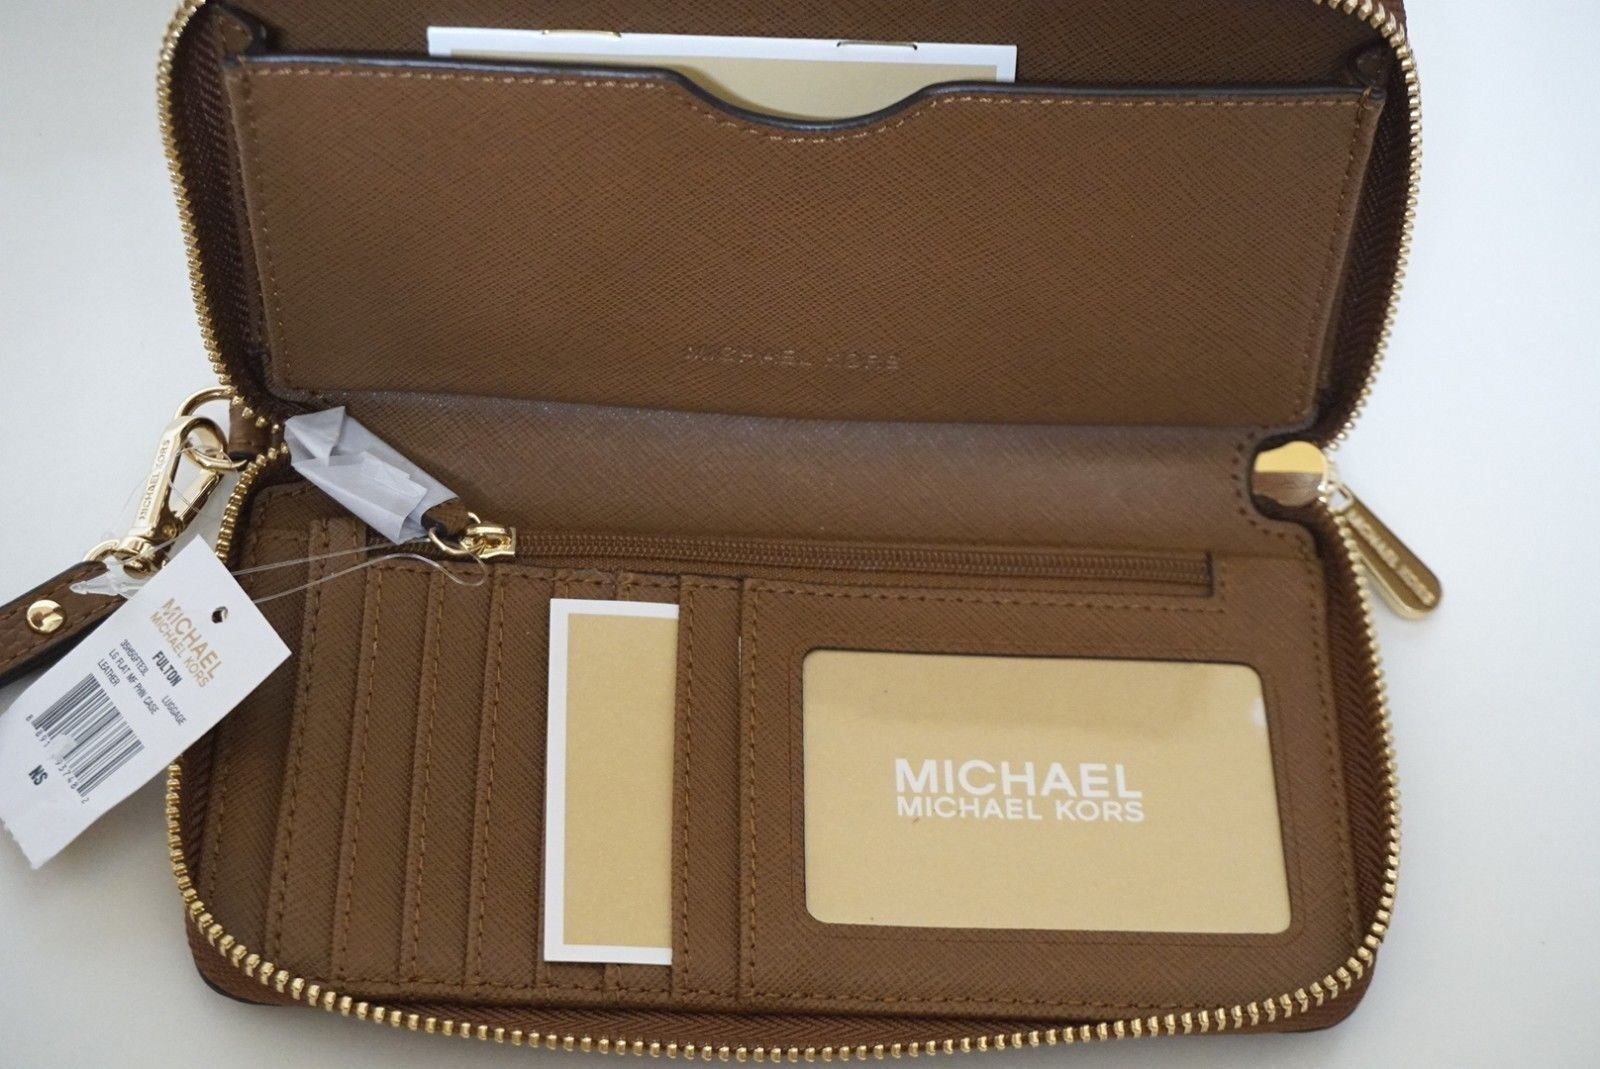 95acbc087d77bf Michael Kors Fulton Brown Pebbled Leather Large Flat Phone Case Wallet  Wristlet